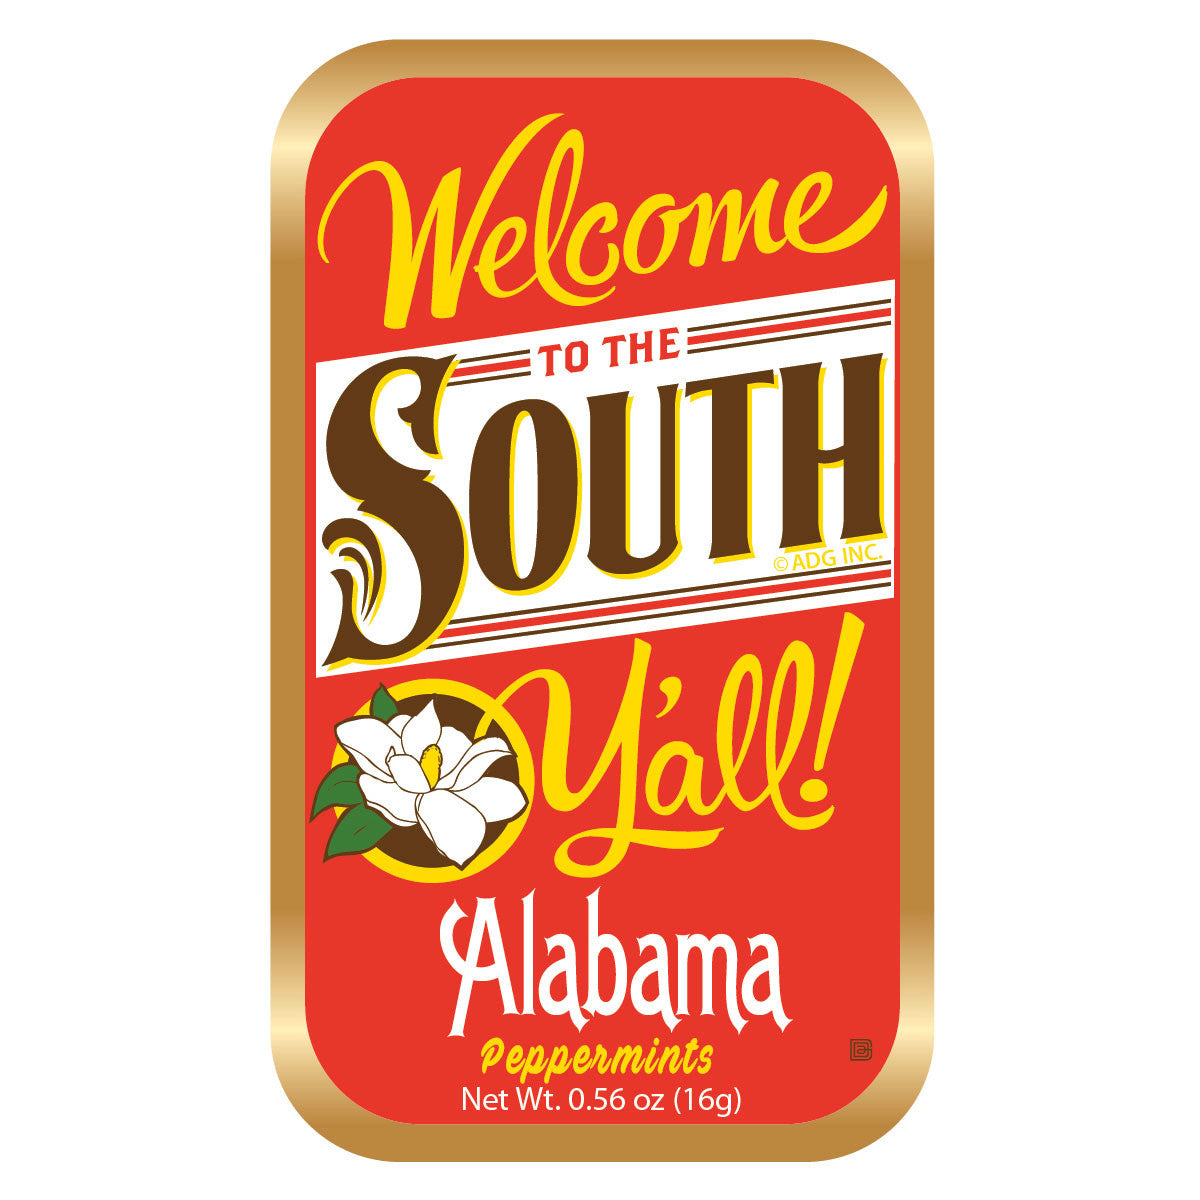 The South Alabama - 1298A